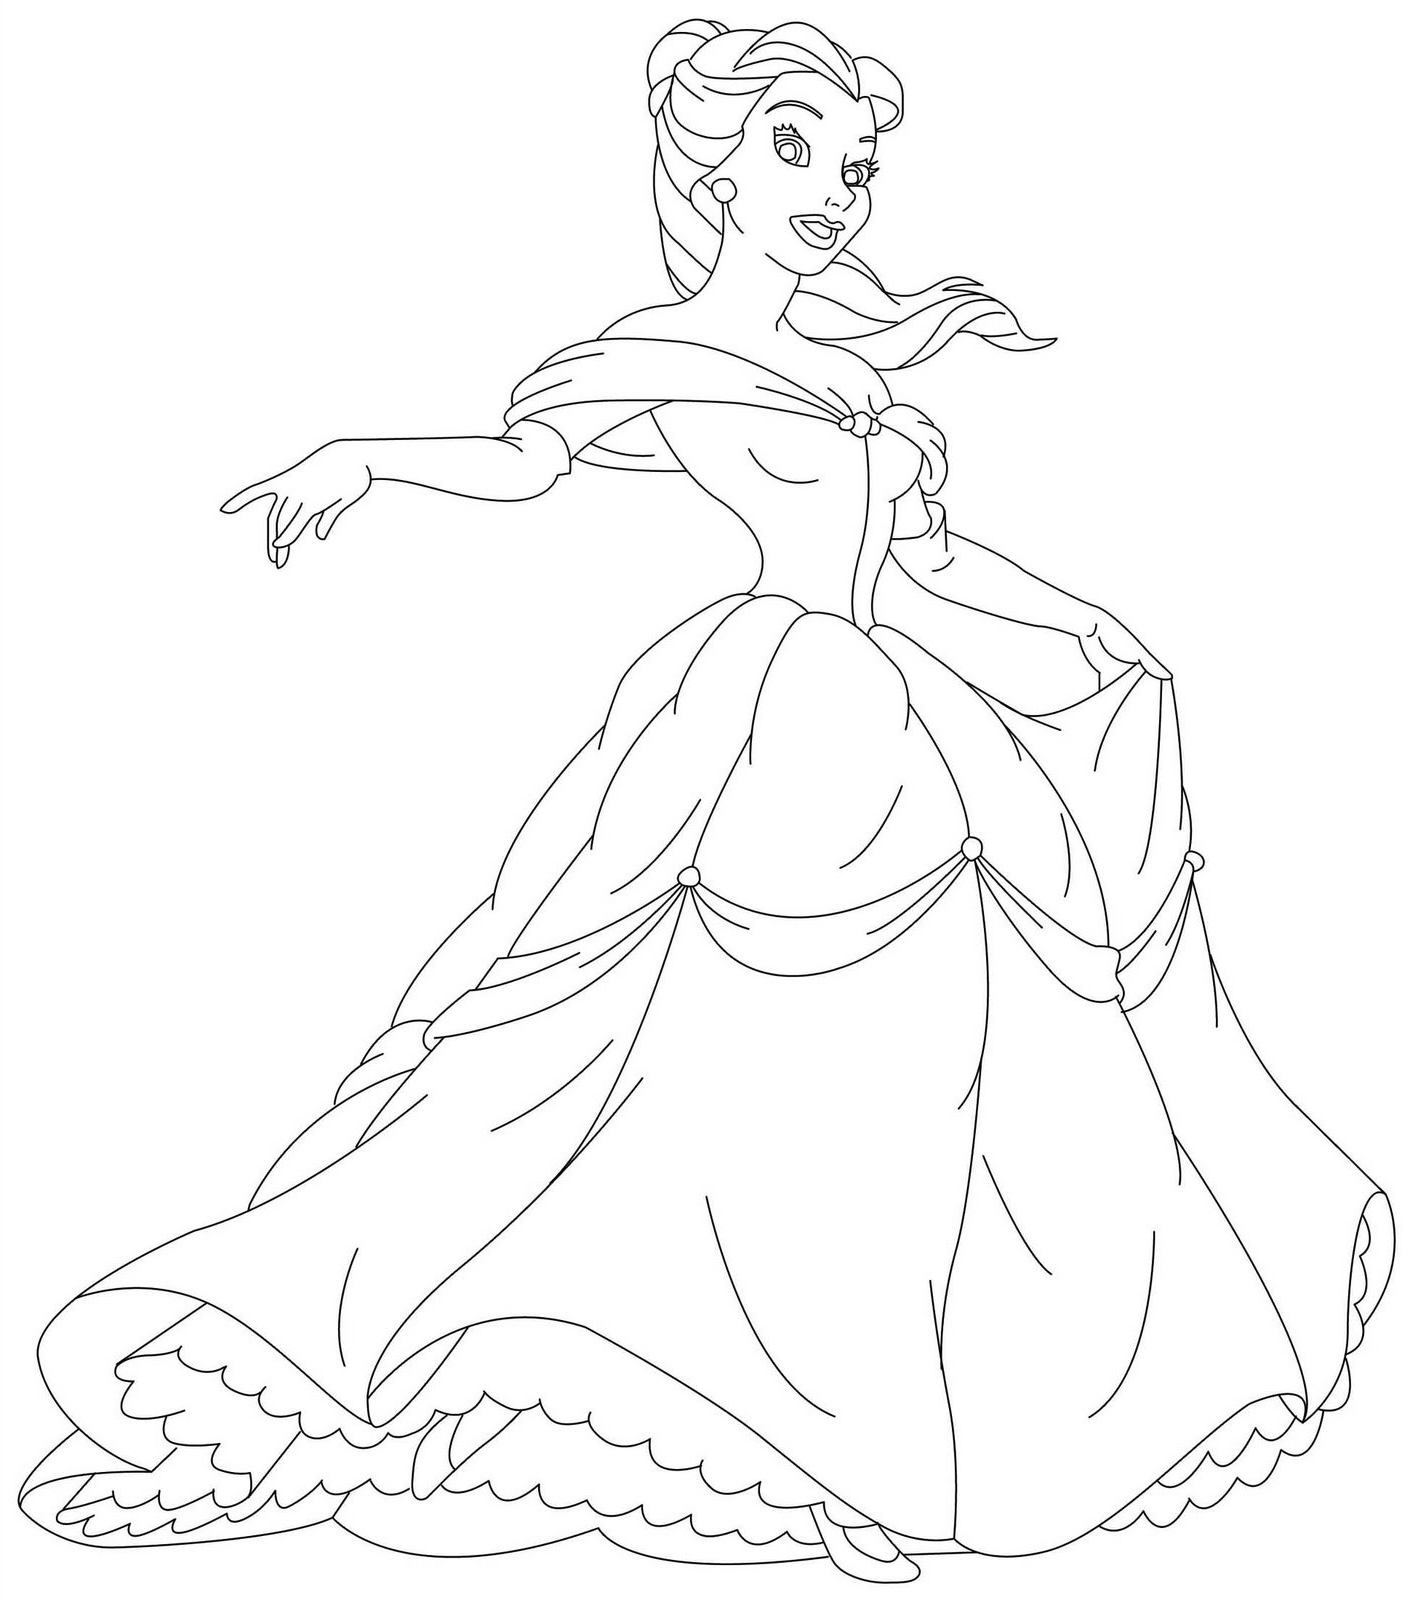 Free coloring pages online for free - Disney Princess Online Coloring Pages